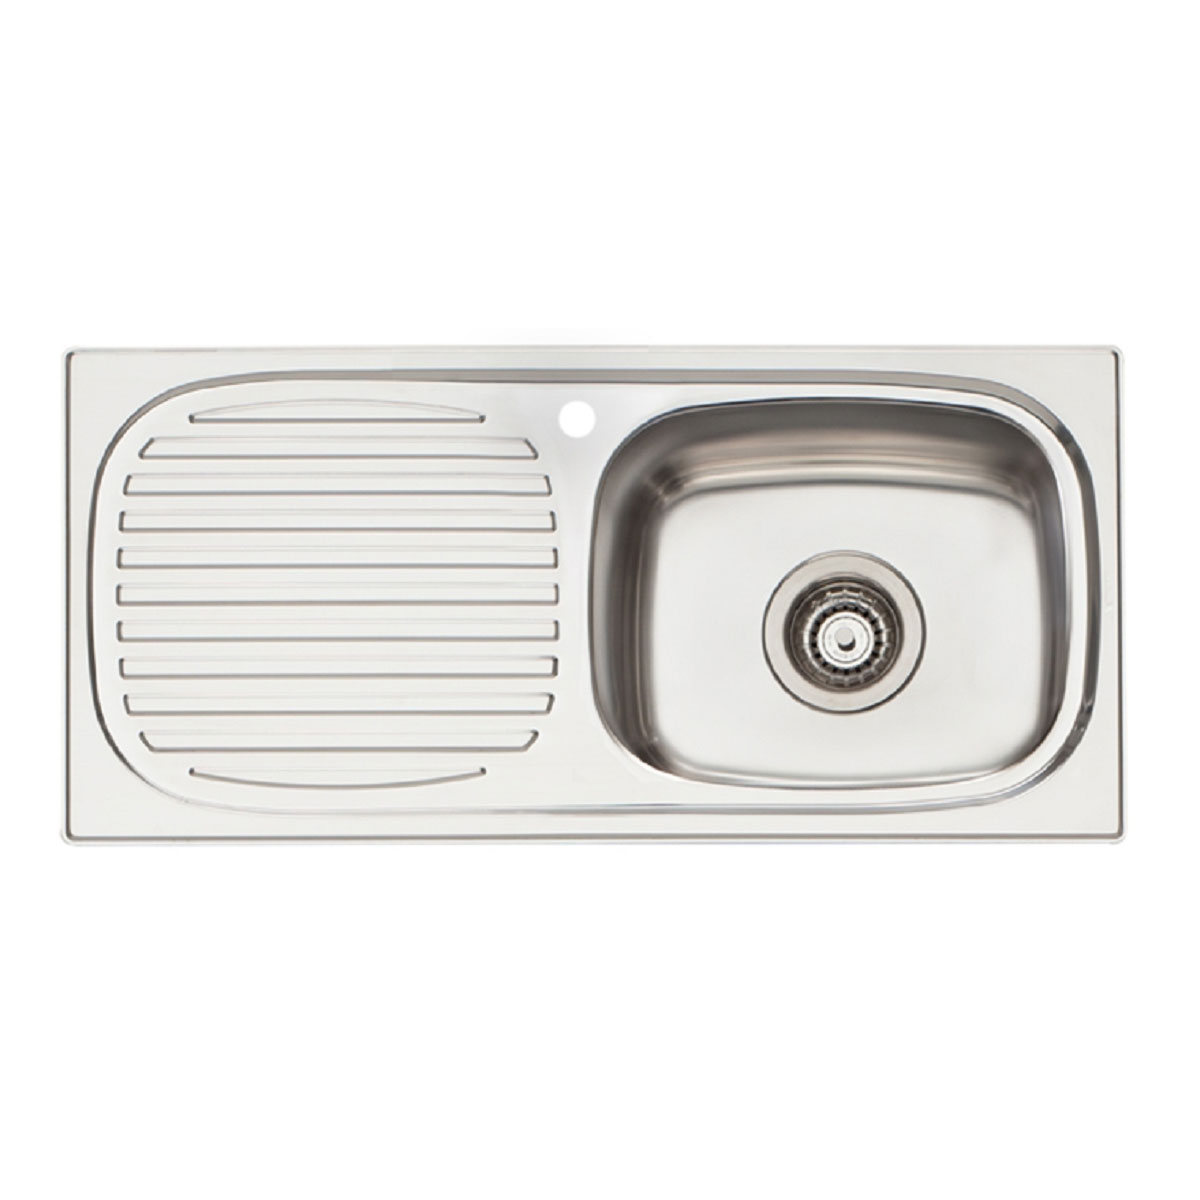 Oliveri Sinks Home Clearance Appliances Online